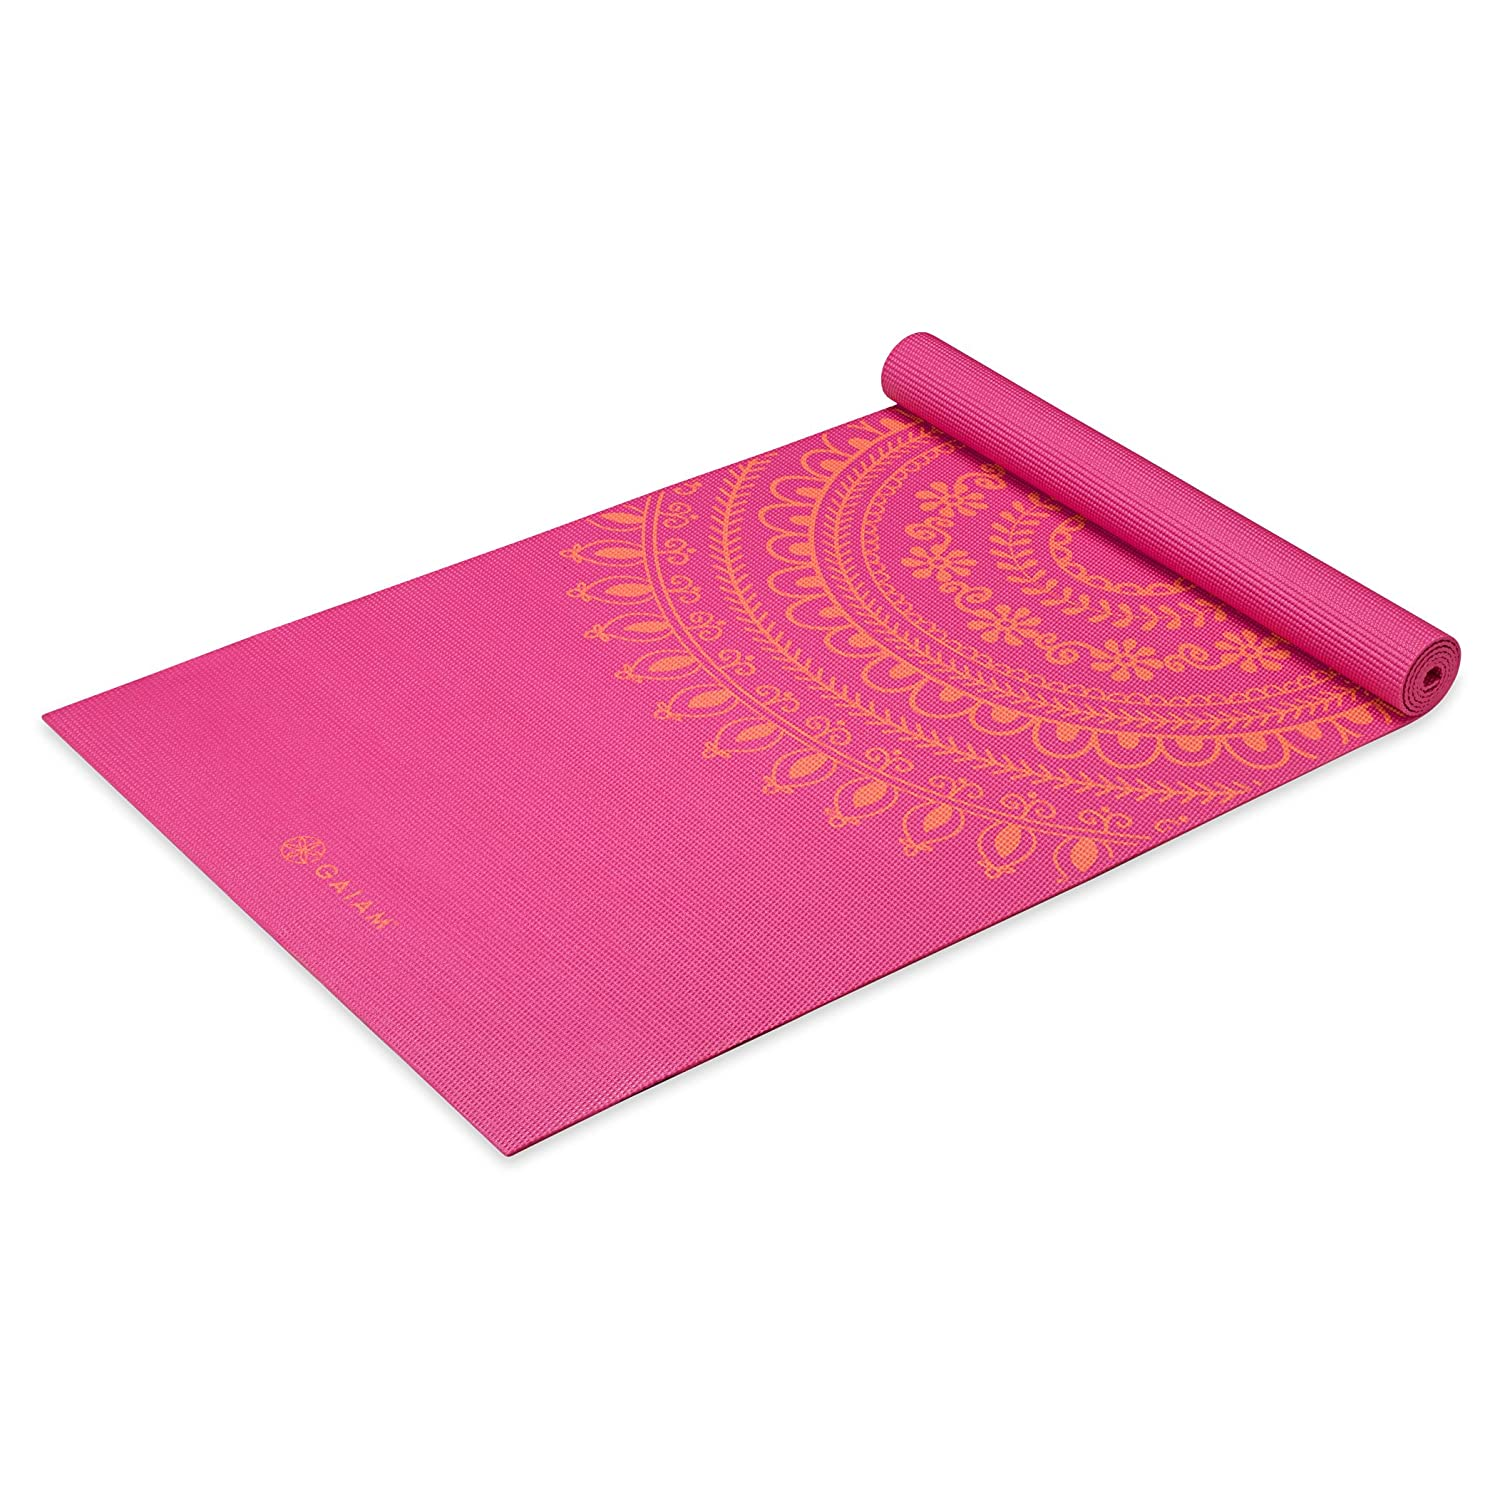 mats gaiam yoga best cute zoom print folkoutdoor mat premium